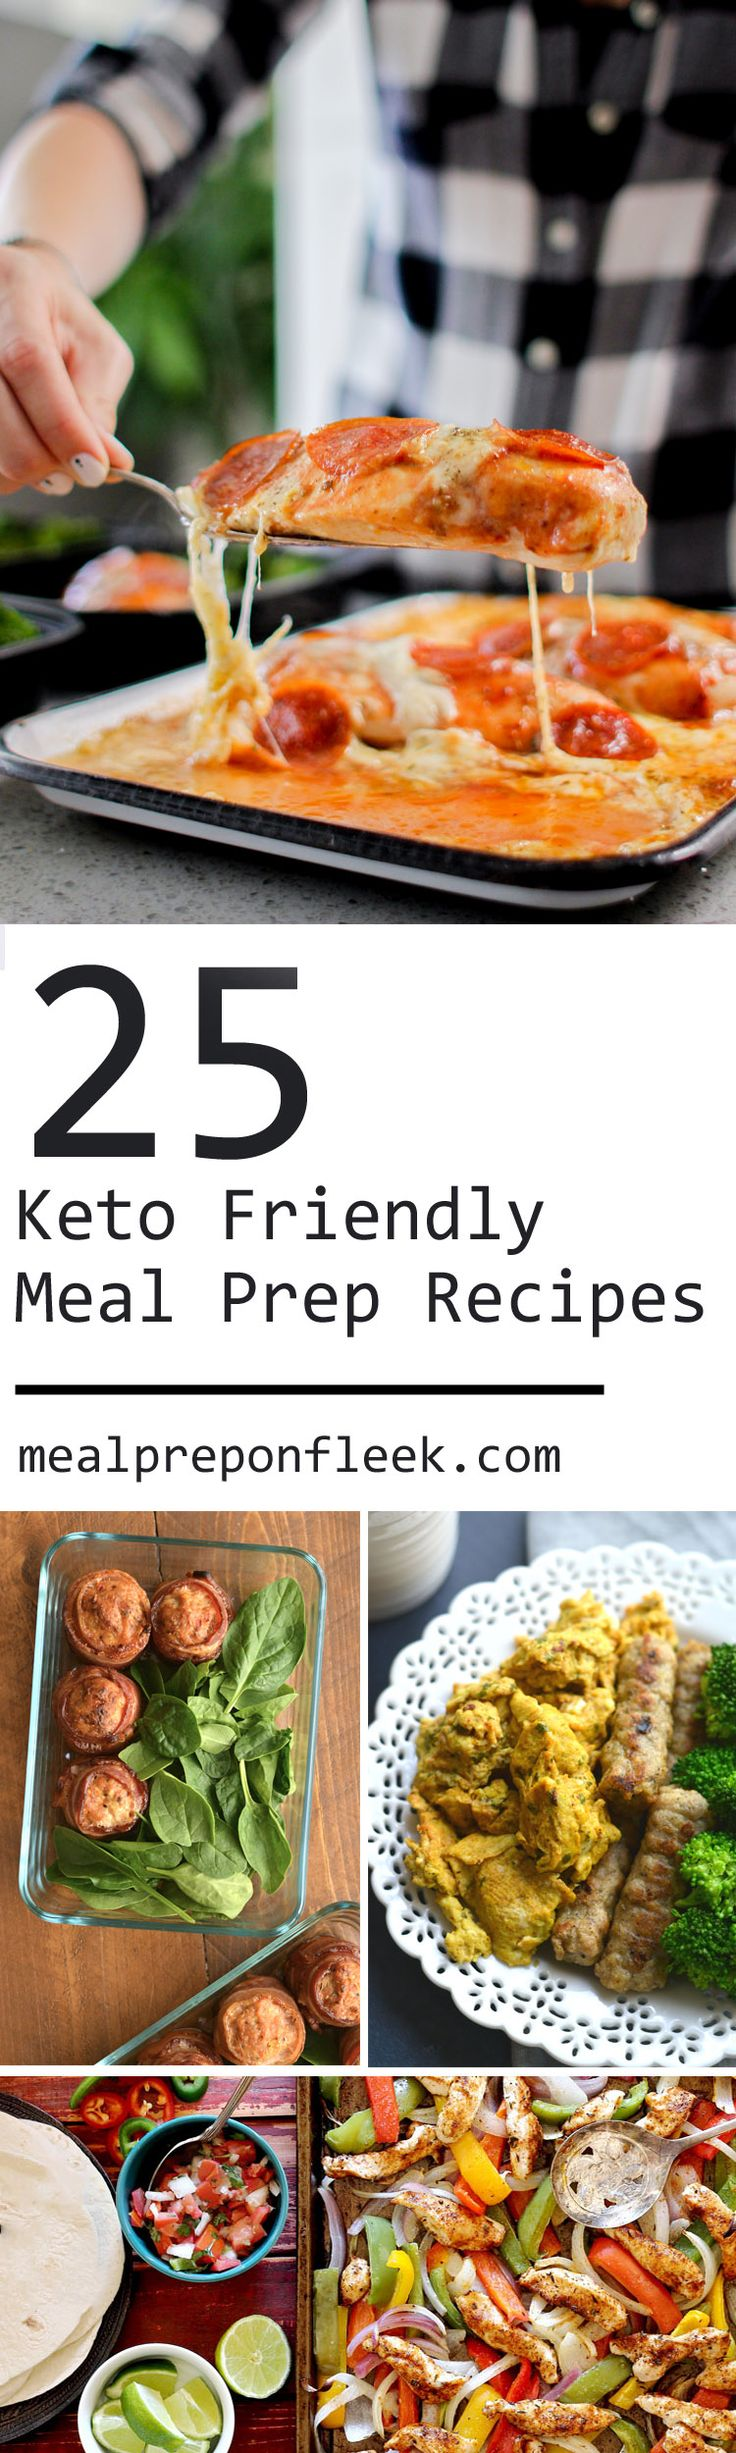 All of the recipes are meal prep friendly leaving you with no excuses as to why you can't stay on track with your ketogenic diet goals. And for those of you who aren't following a keto diet give these recipes a try anyway! Pair them with your favorite rice alternatives for an incredibly delicious and healthy meal.